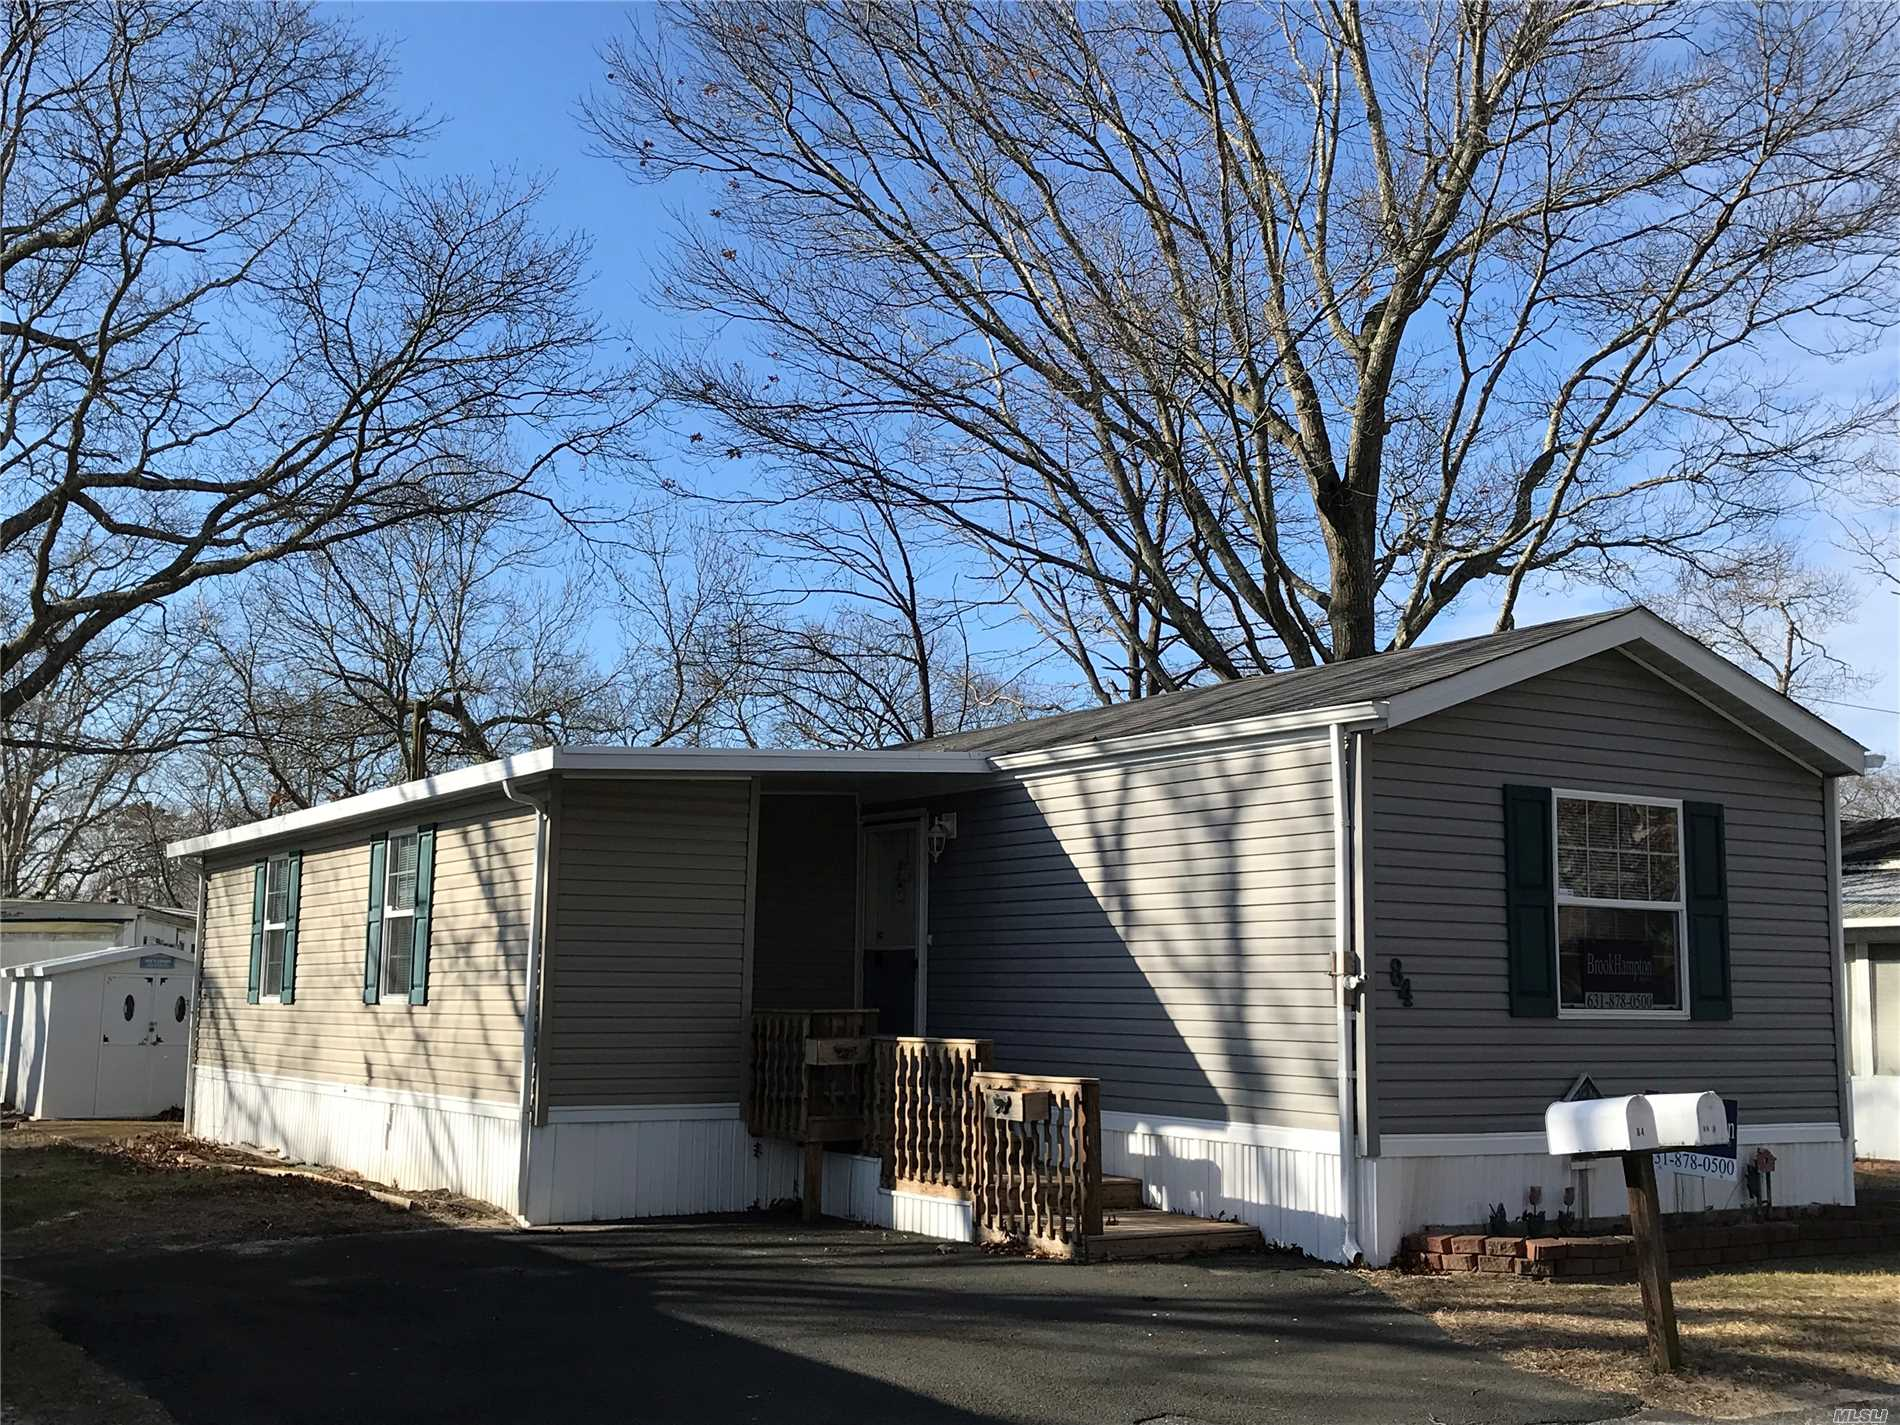 Spacious 2 Bedroom 1.5 Bath Modular Home In 55+ Community. This 2003 Home Features An Addition With Den/Dining Or Possible 3rd Bedroom, 2 Parking Spaces, Shed, Large Eik With Skylight And Lots Of Closet Space. Propane Heat, Cac, Furnishings Included! Move Right In! Monthly Fee $688.